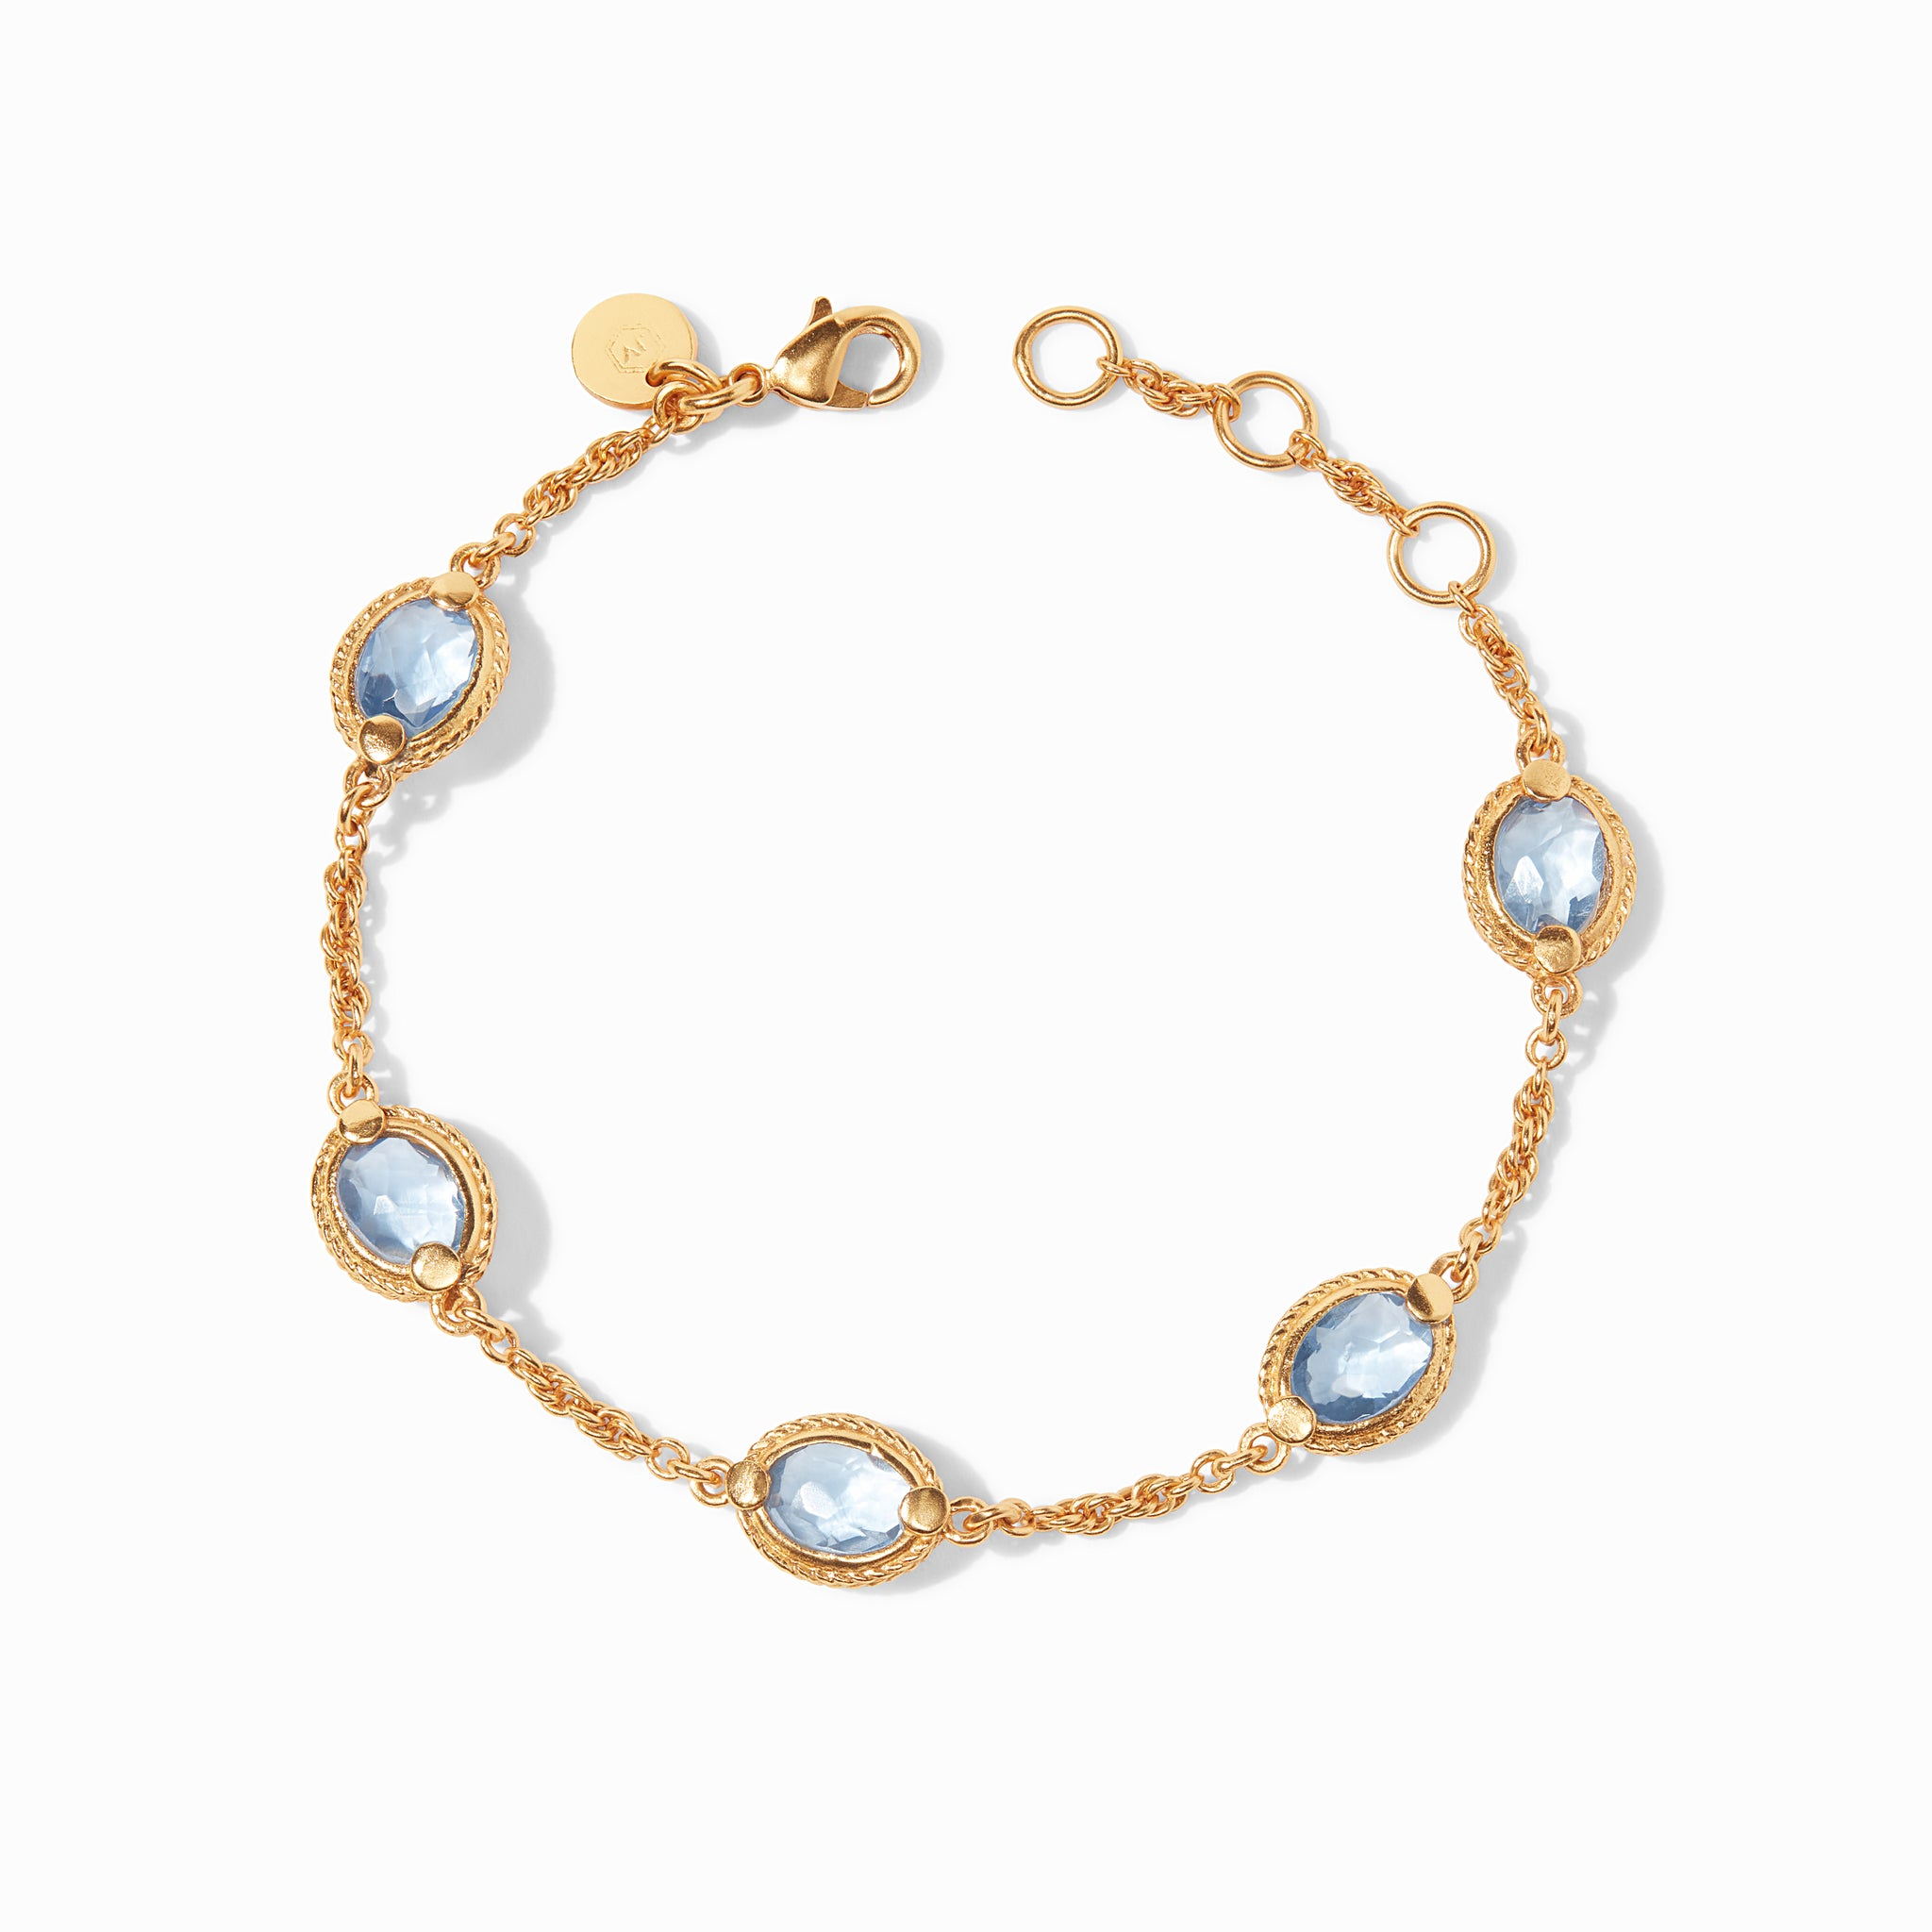 Chalcedony Blue, just add delicates, mothers day, long weekend look, summertime 2020, arm party, gift guide 2020